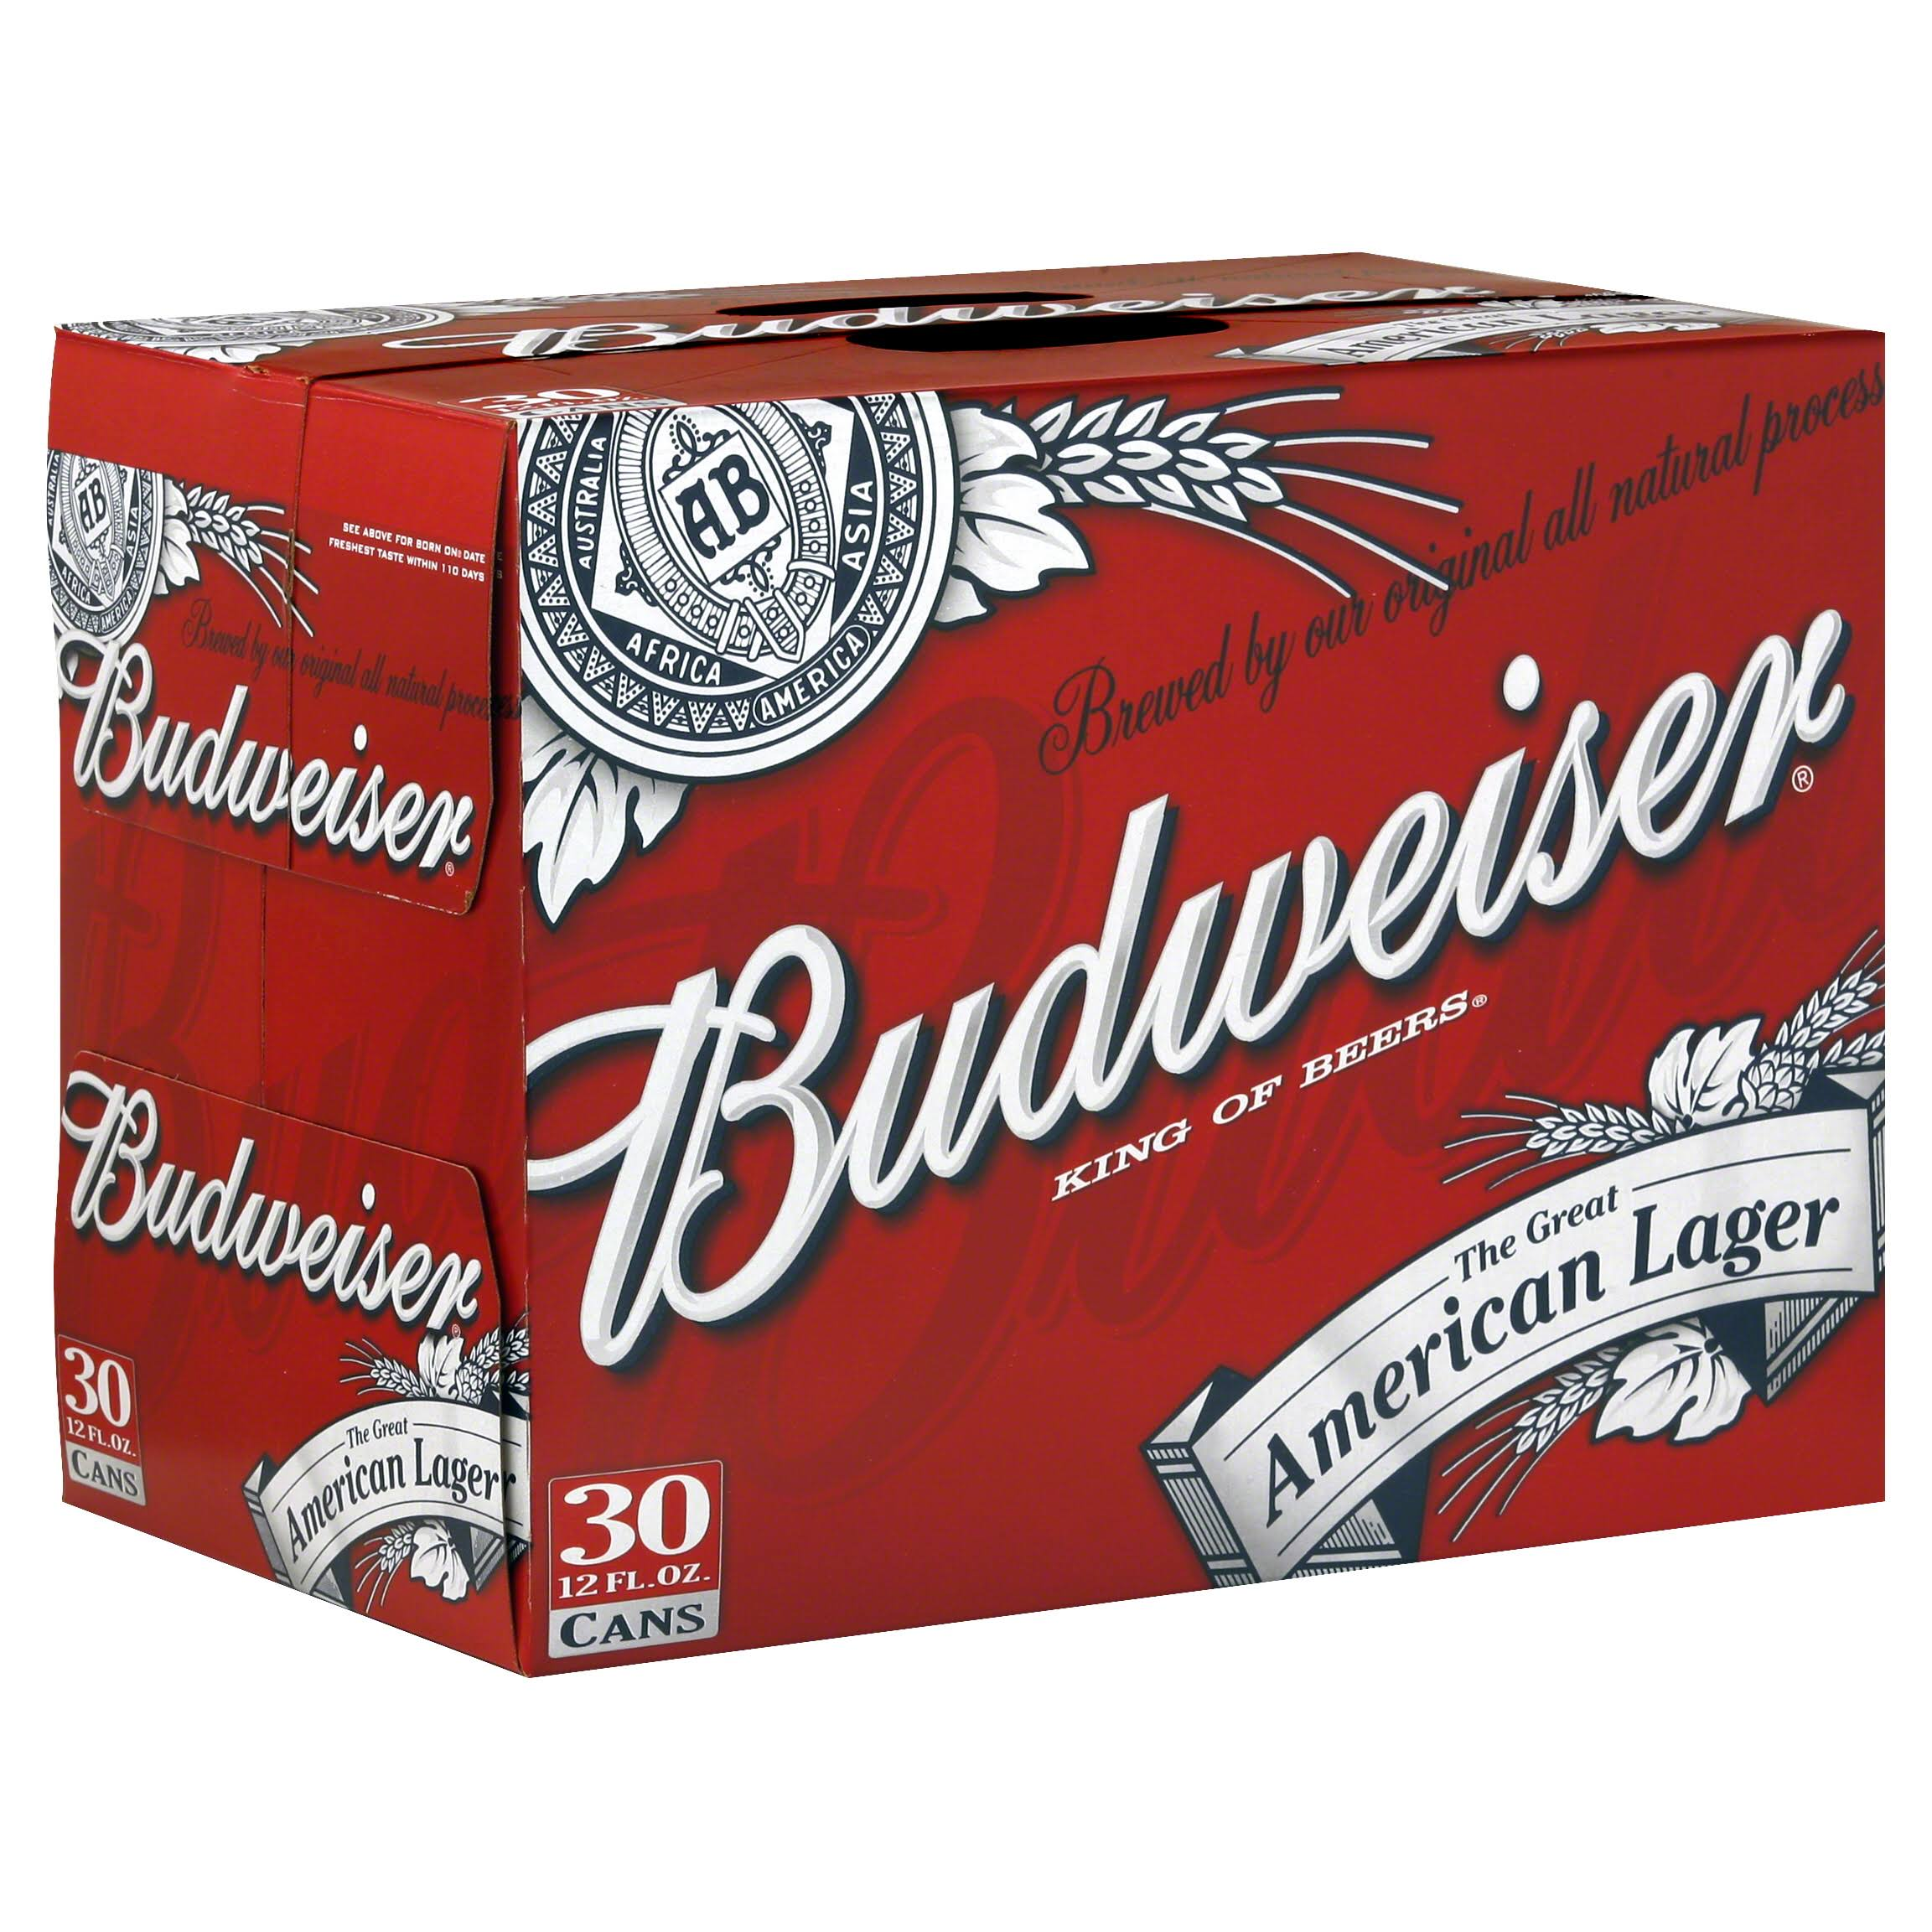 Budweiser Beer - 30 Cans